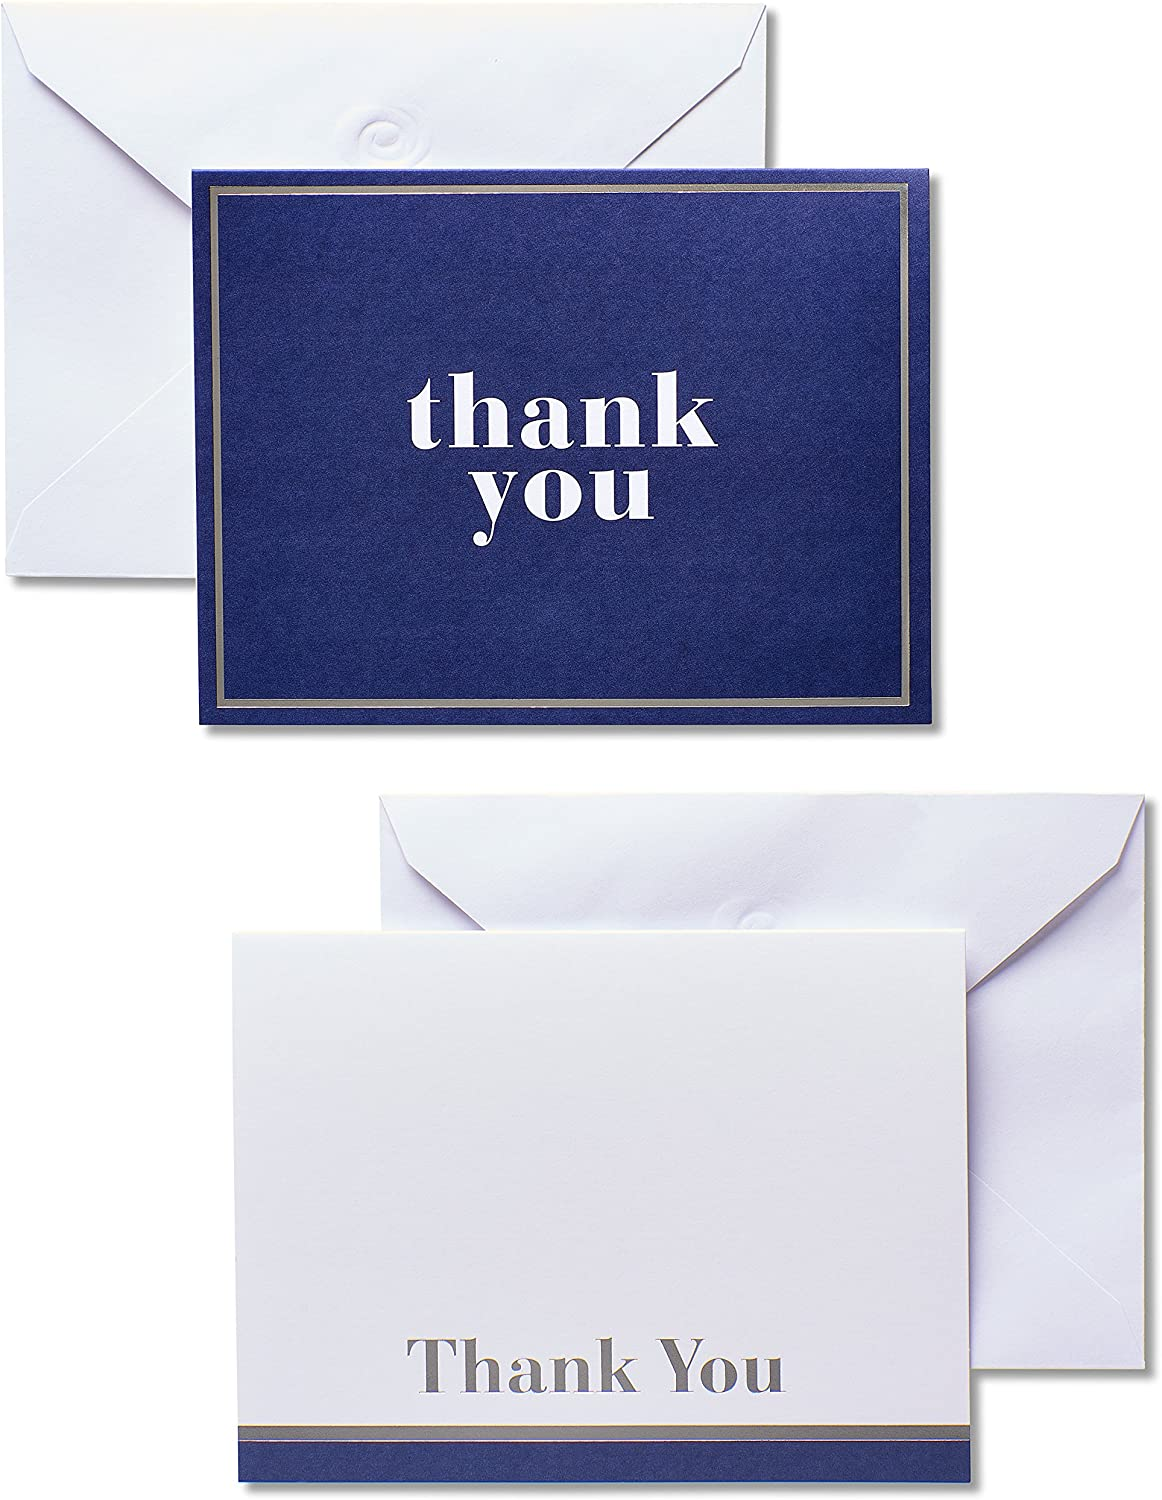 American Greetings unopened pack 6 Thank-you cards with 3 unique designs